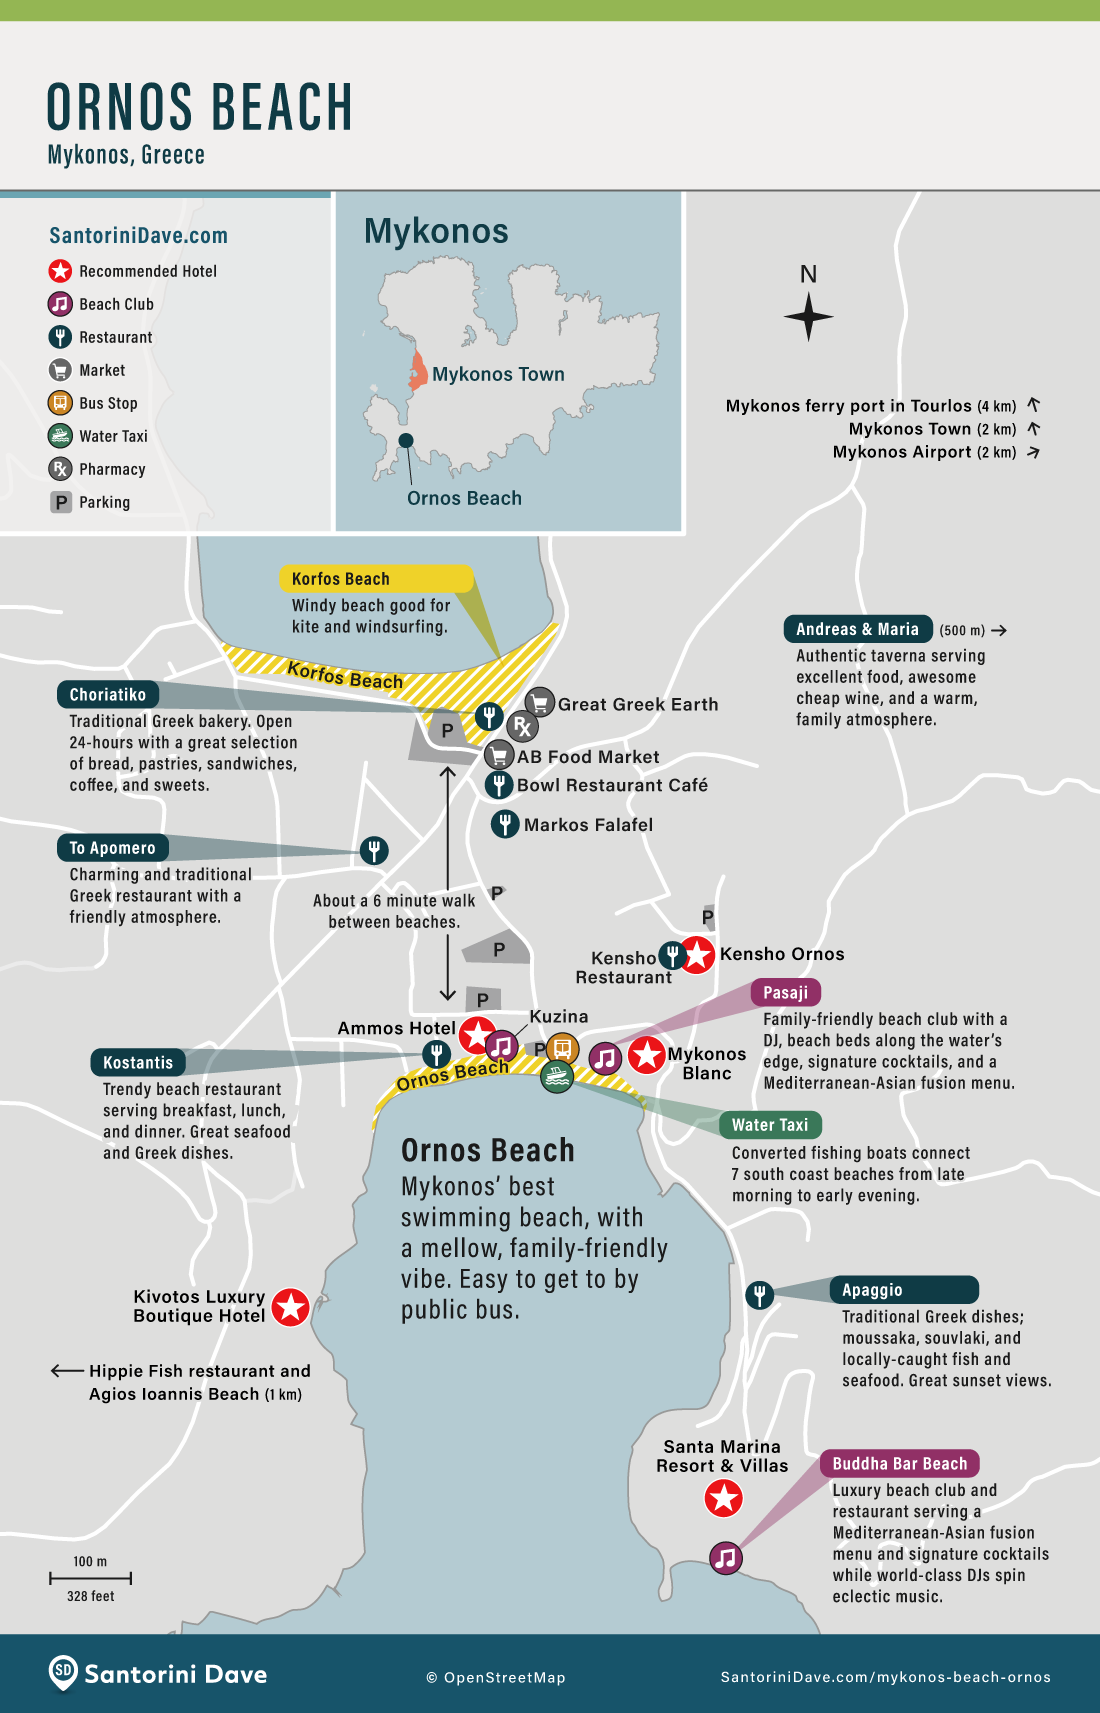 Map showing the area surrounding Ornos Beach, including restaurants, beach clubs, and hotels